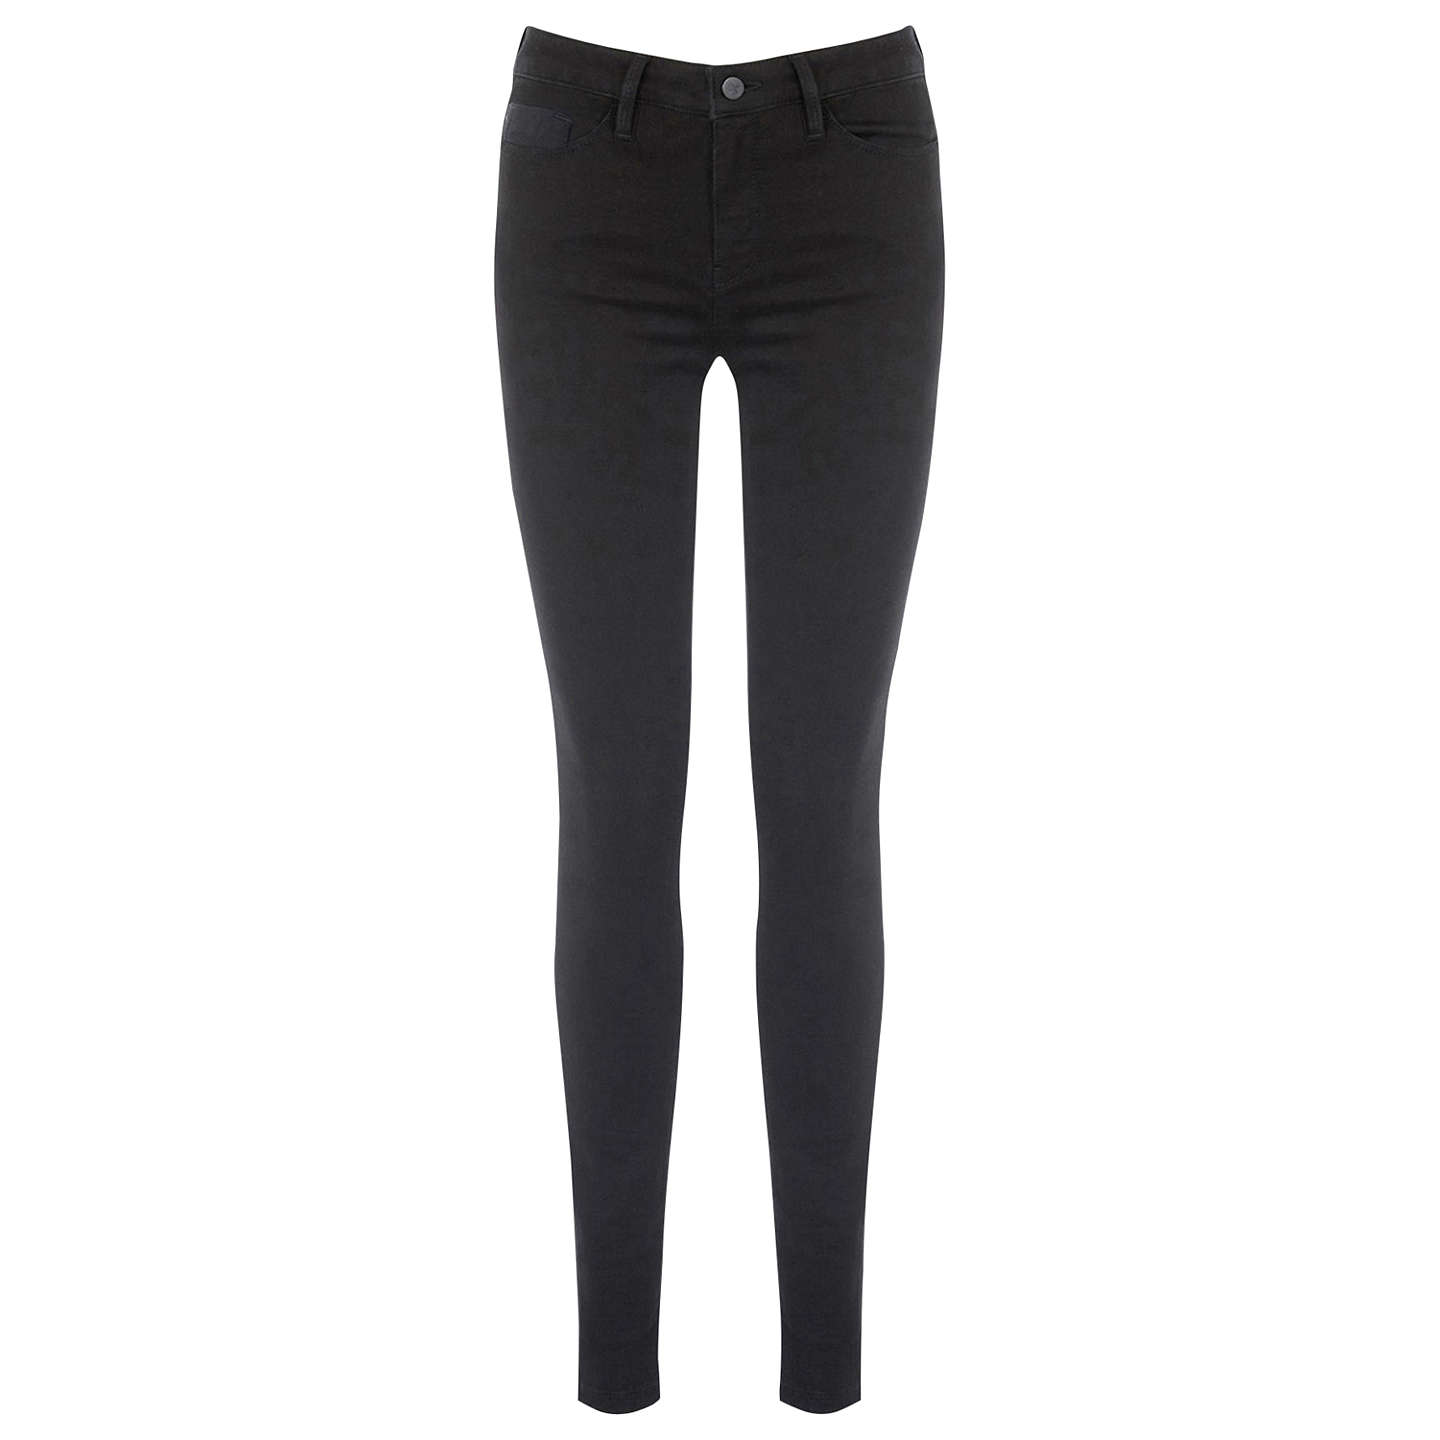 BuyWarehouse The Skinny Cut Jean , Black, 34R Online at johnlewis.com